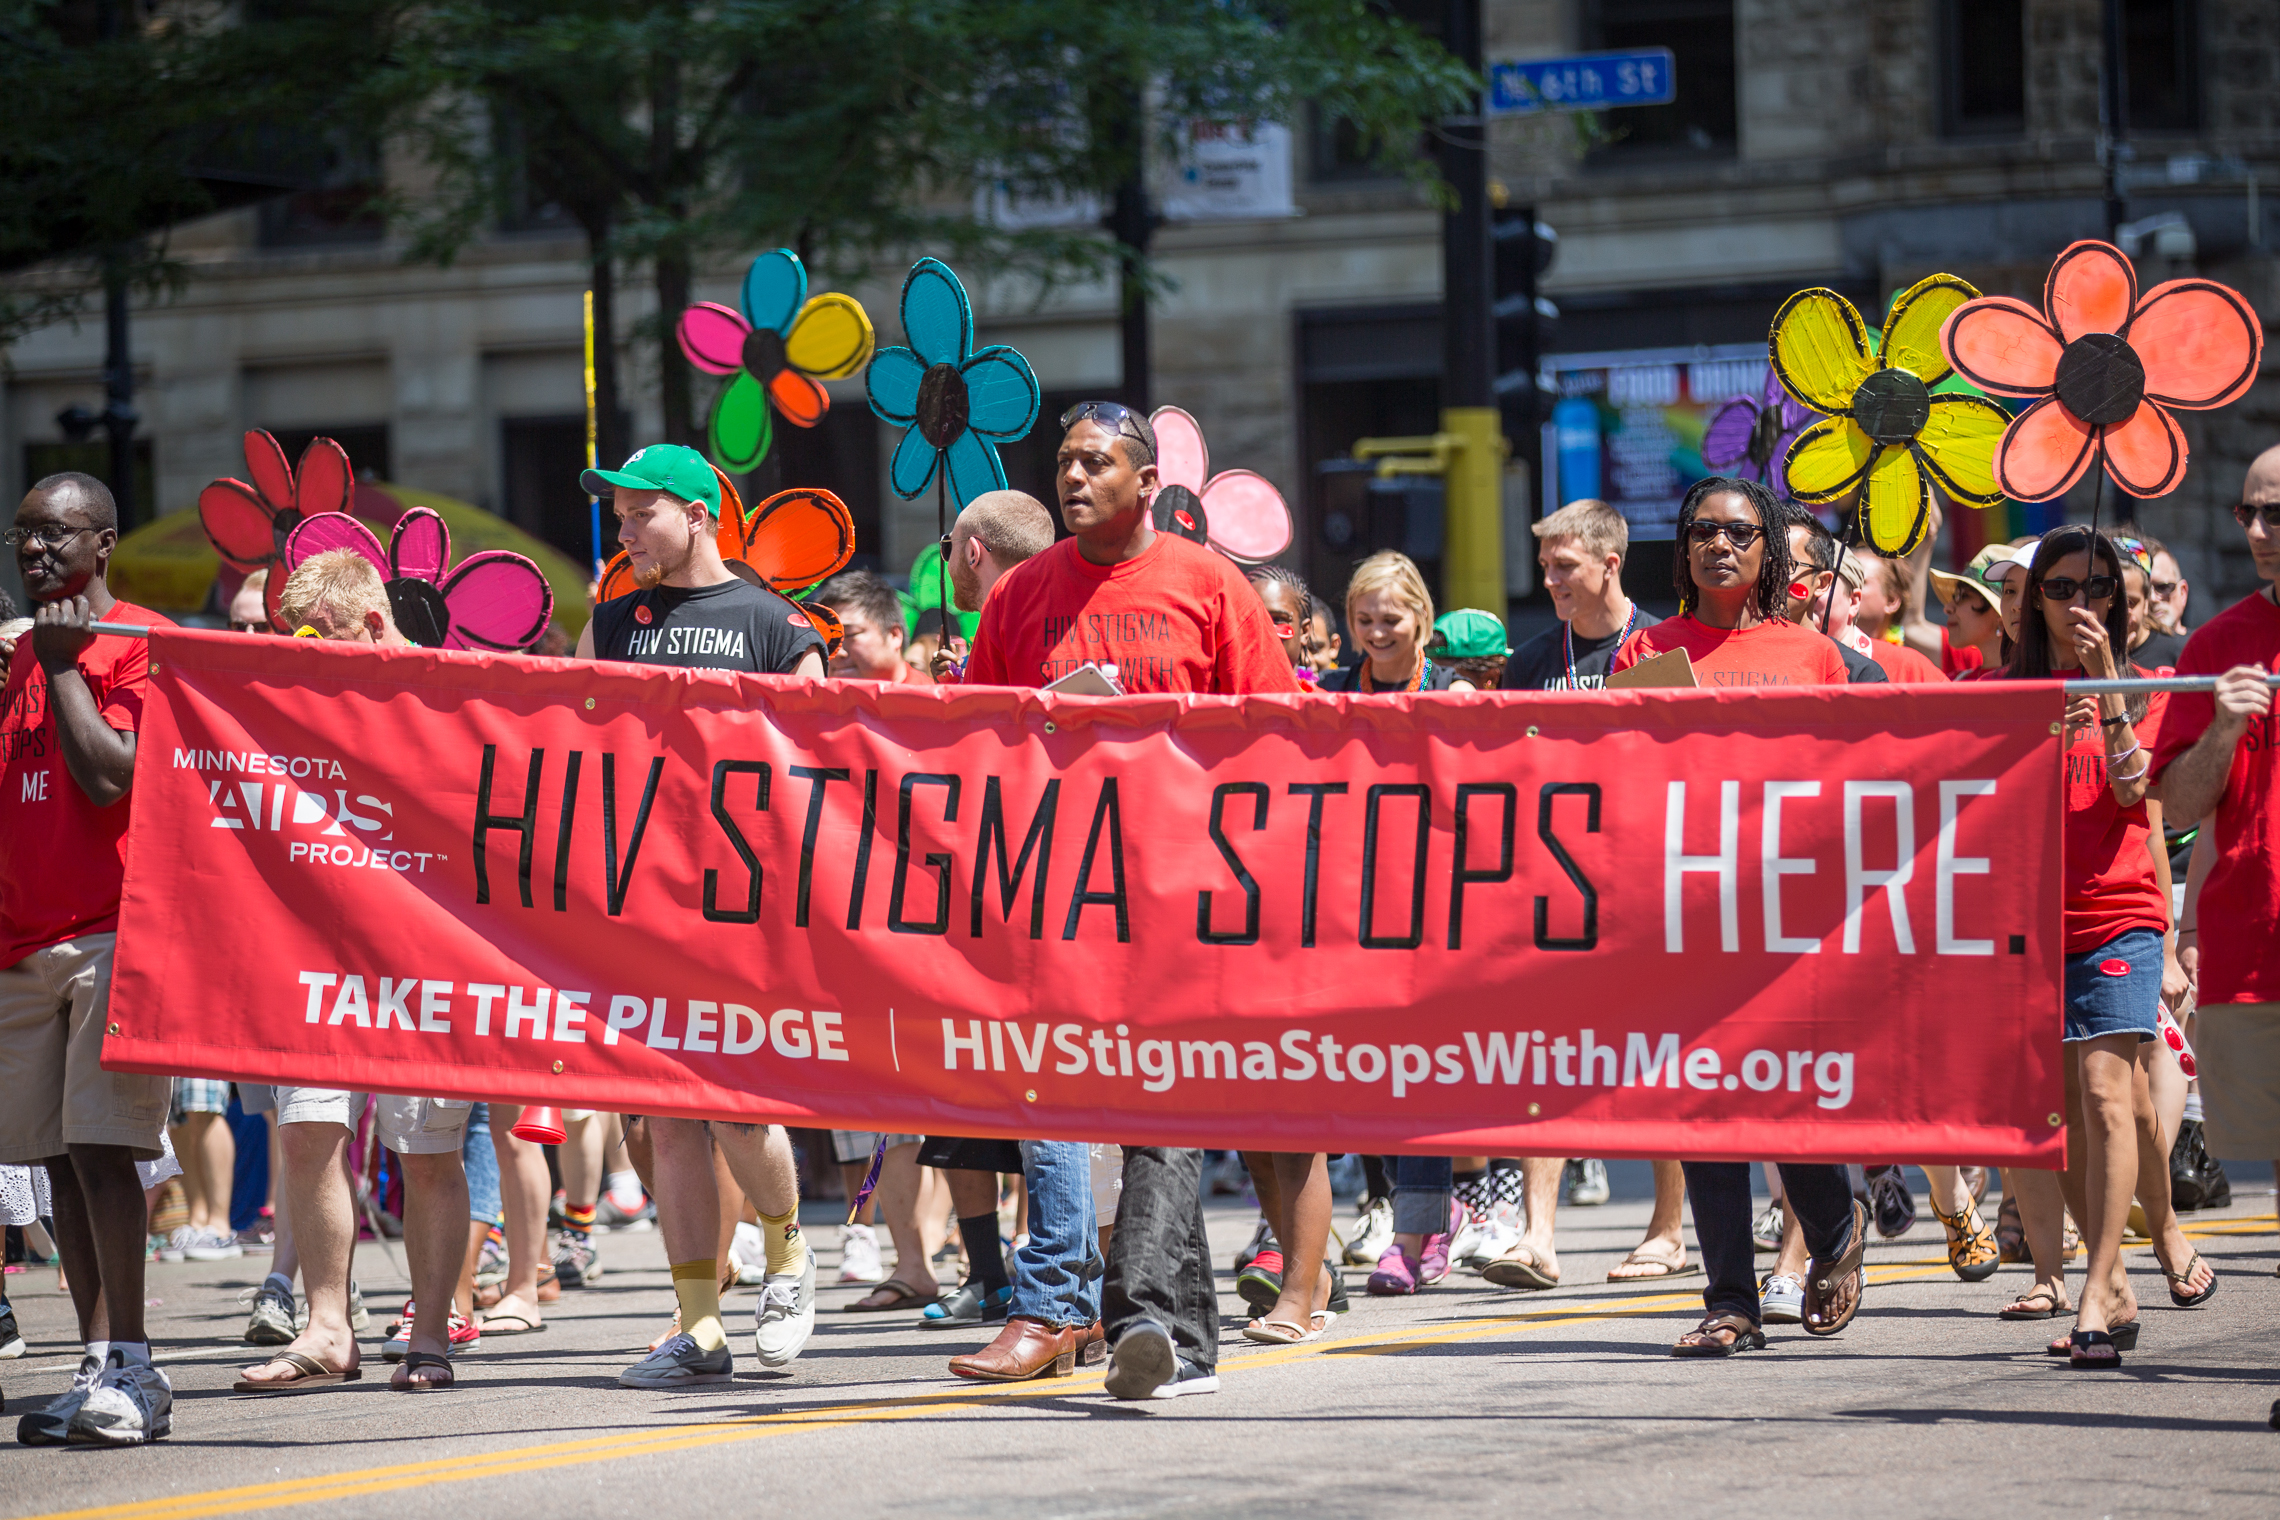 The Masked Syndrome: HIV, Health Disparities, and the Two-Pronged Approach